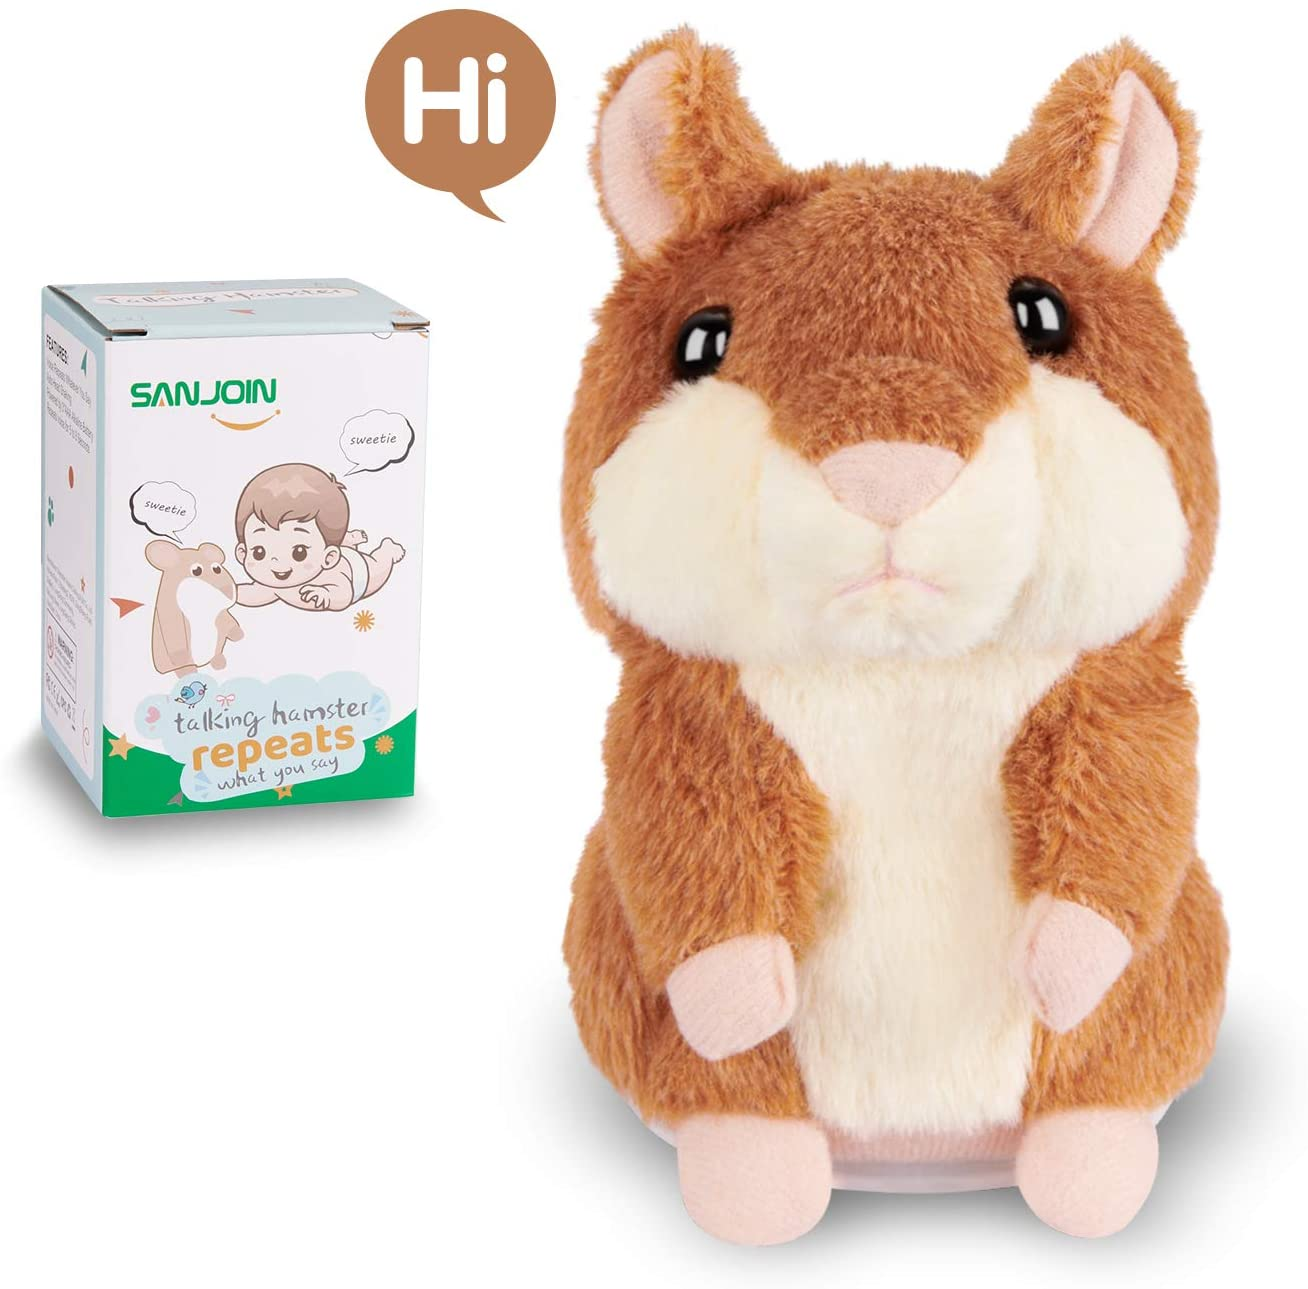 SANJOIN Kids Toys Talking Hamster Repeats What You Say, Talking Plush Interactive Toys Repeating Plush Animal Toy, Fun for 2,3 Year Old Kids, Baby, Child, Toddlers